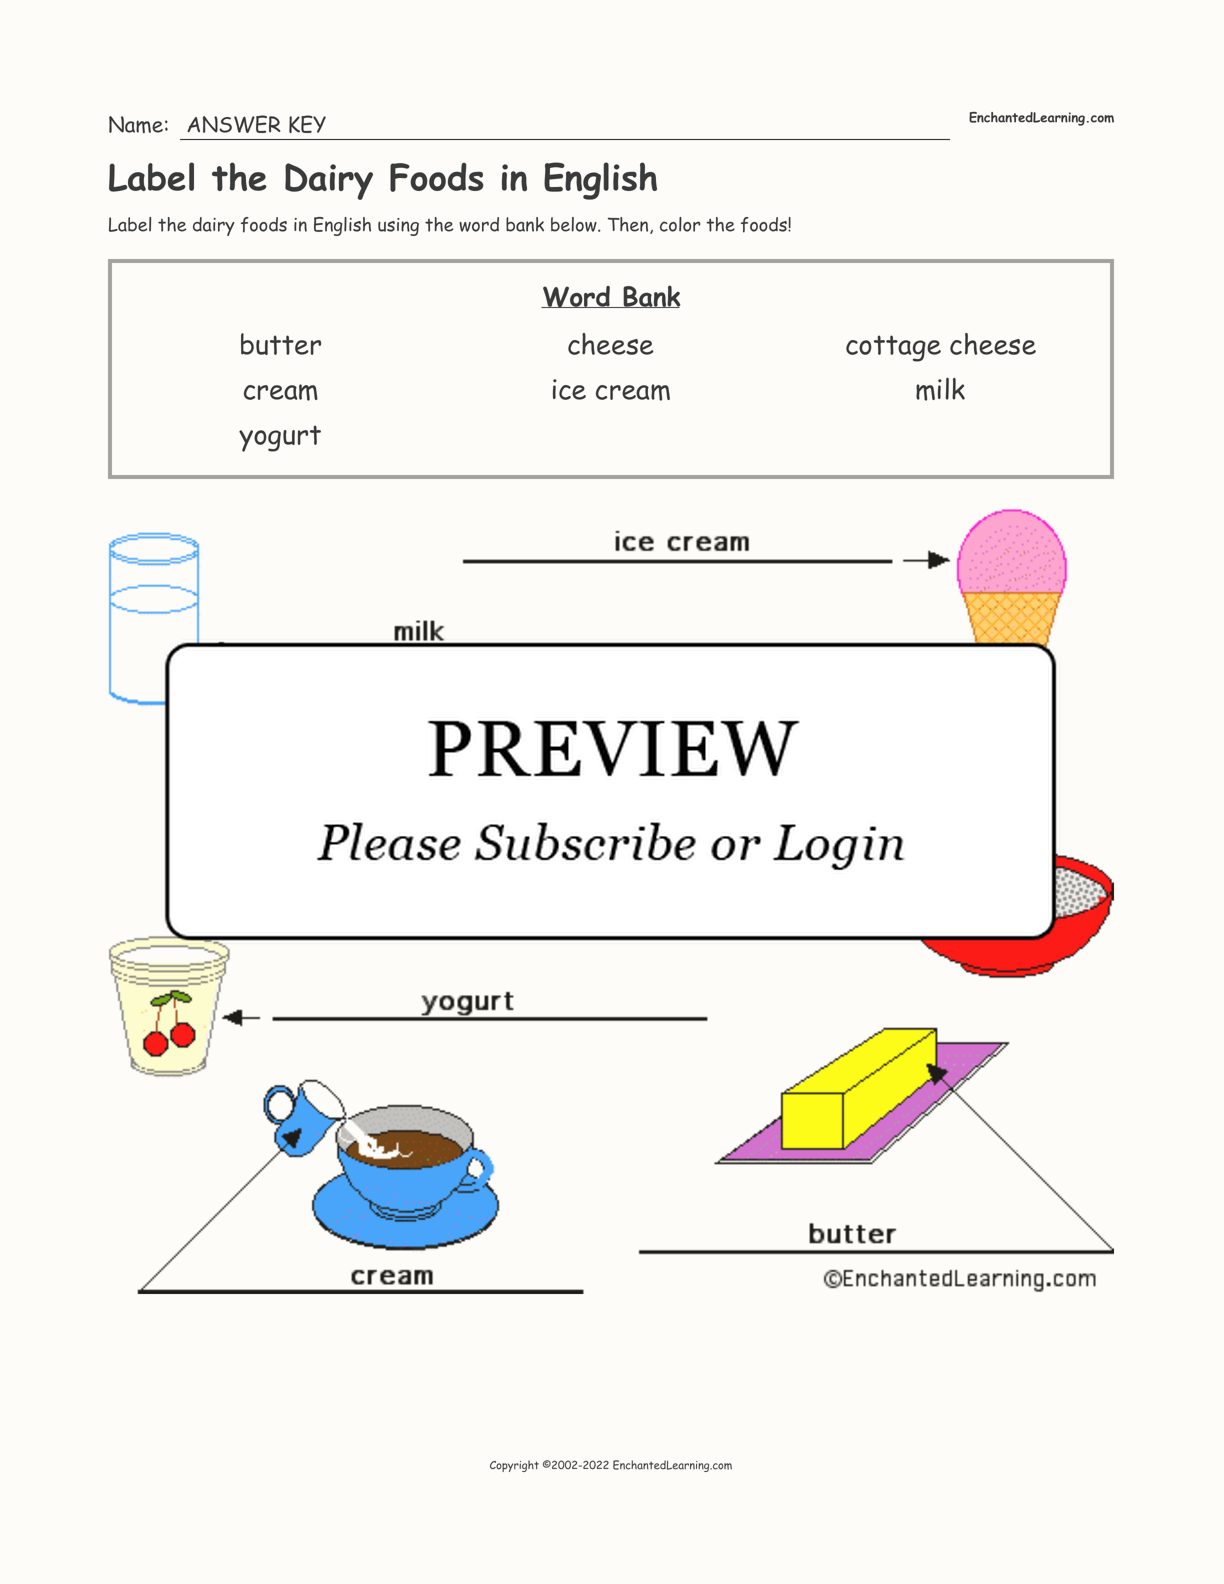 Label the Dairy Foods in English interactive worksheet page 2